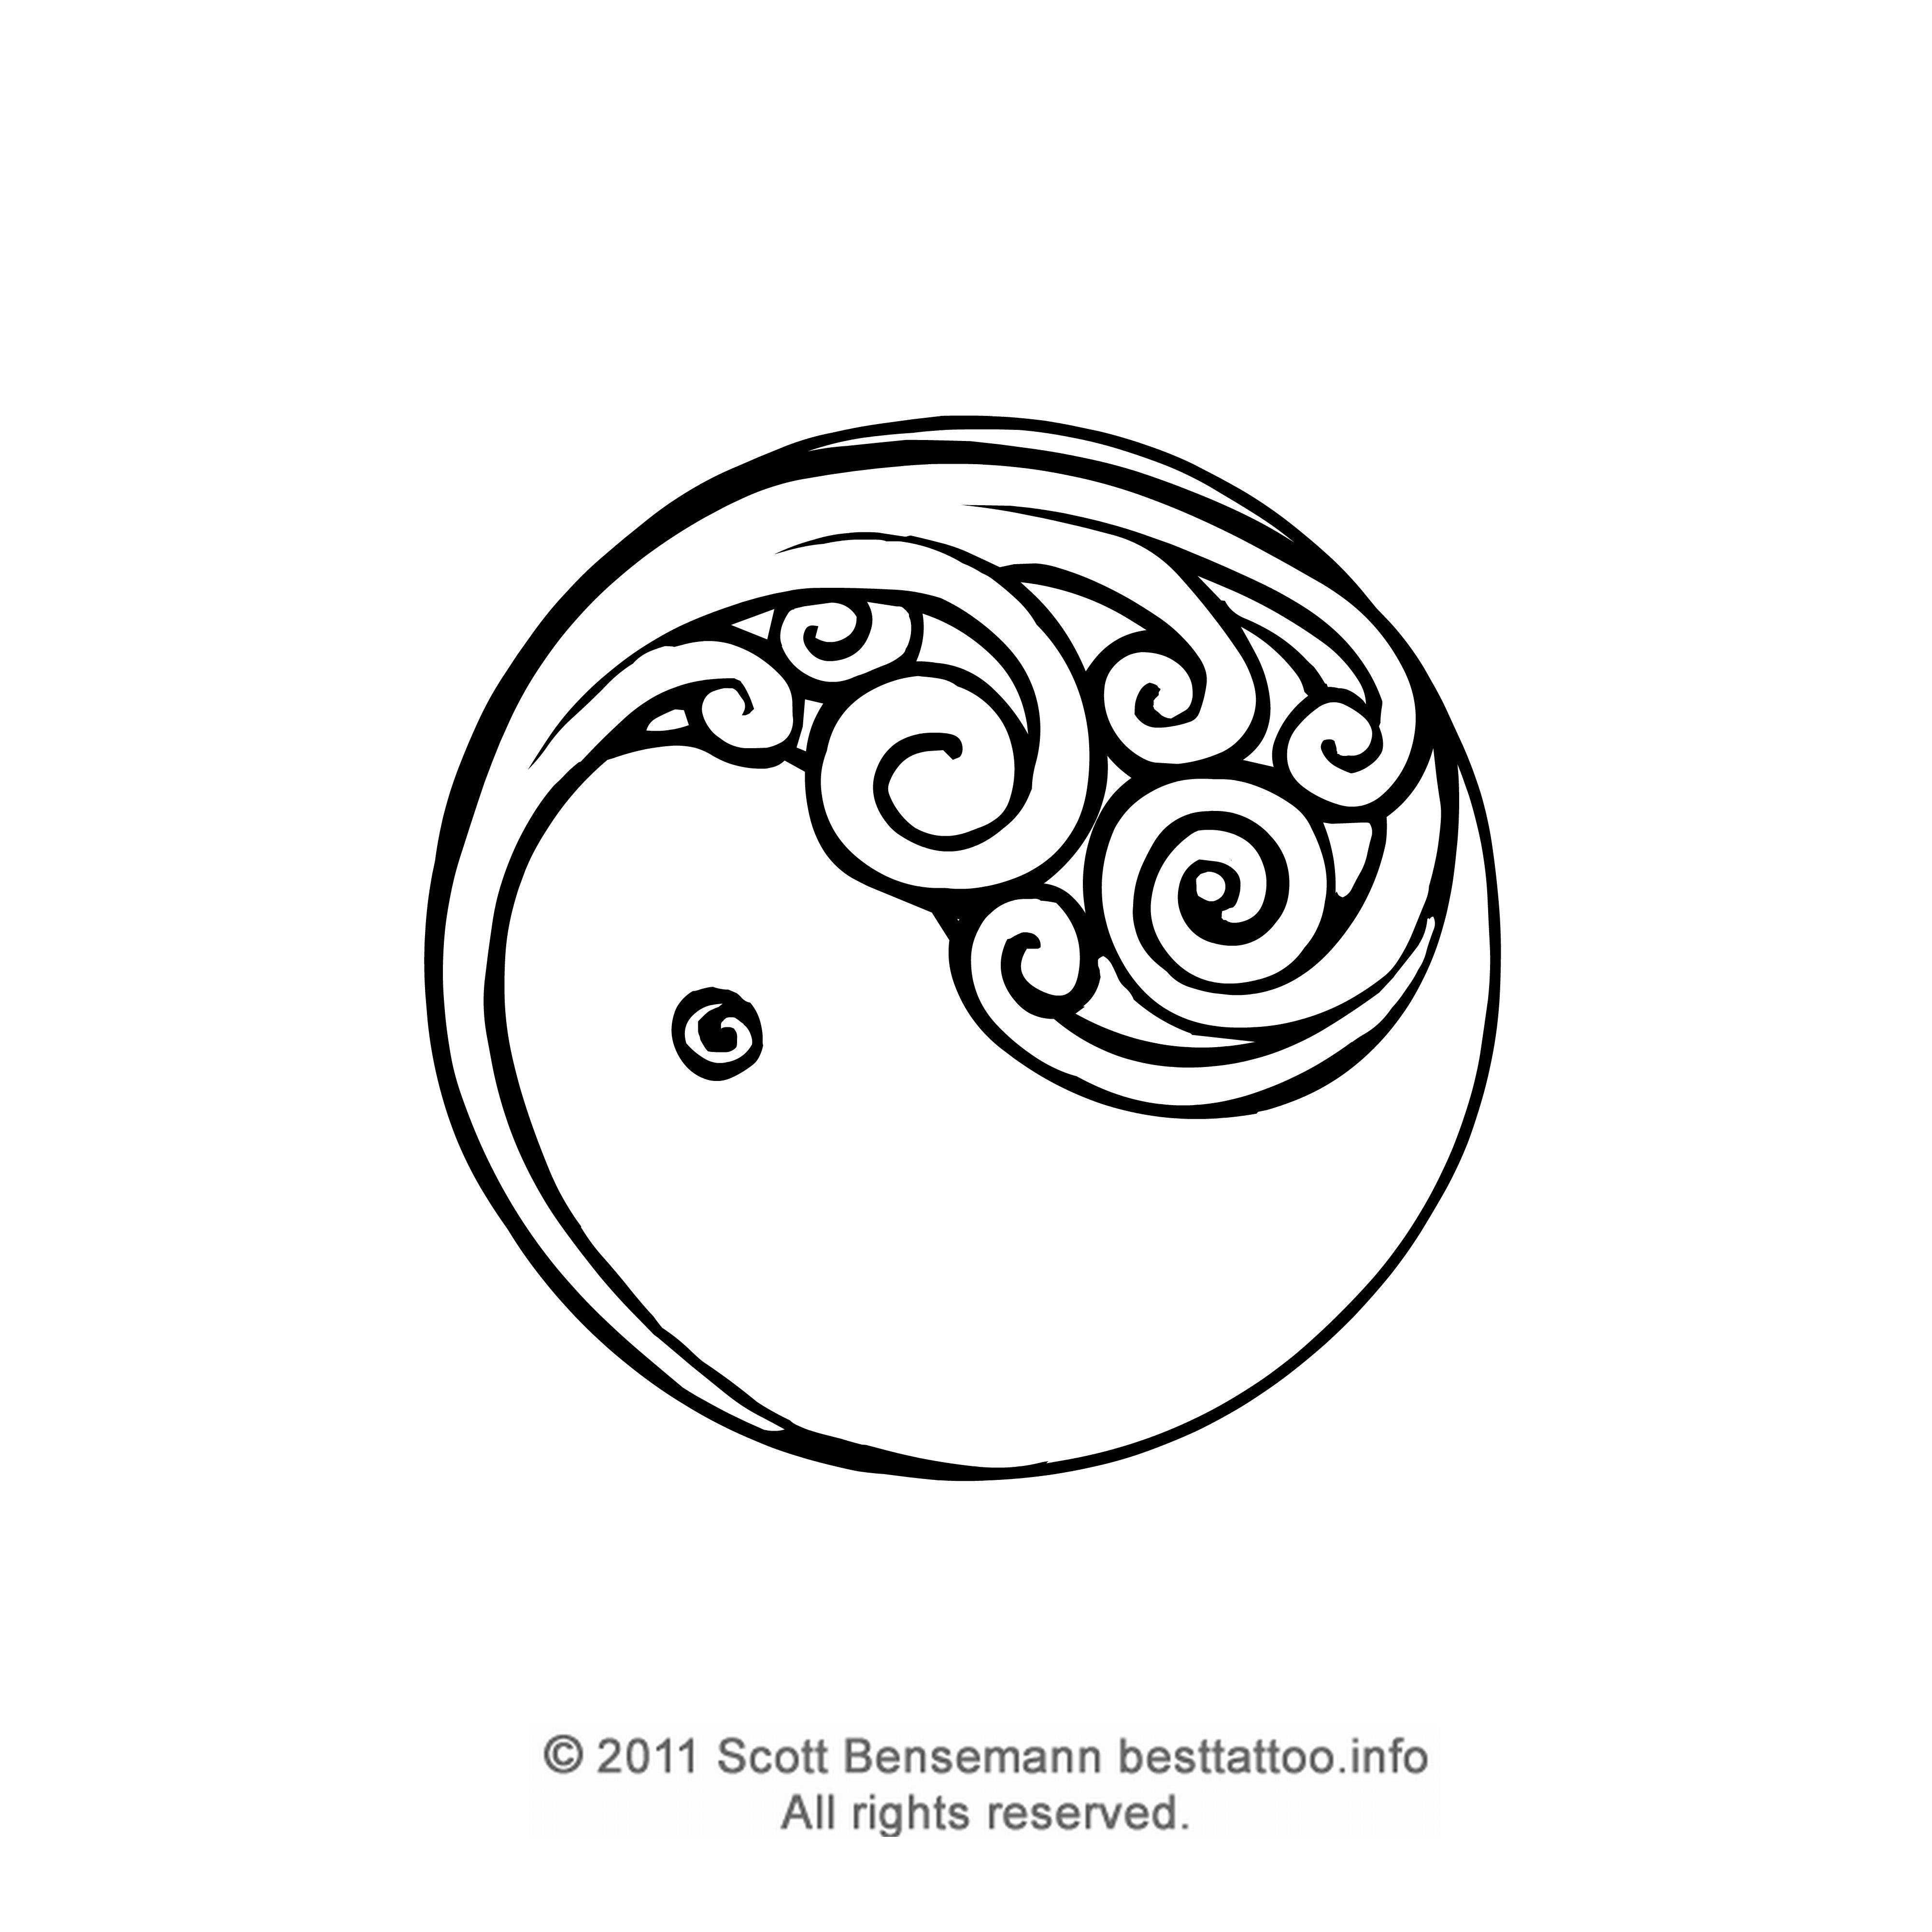 834e93304 New Zealand Maori silver fern koru yin yang tattoo flash black and white  design